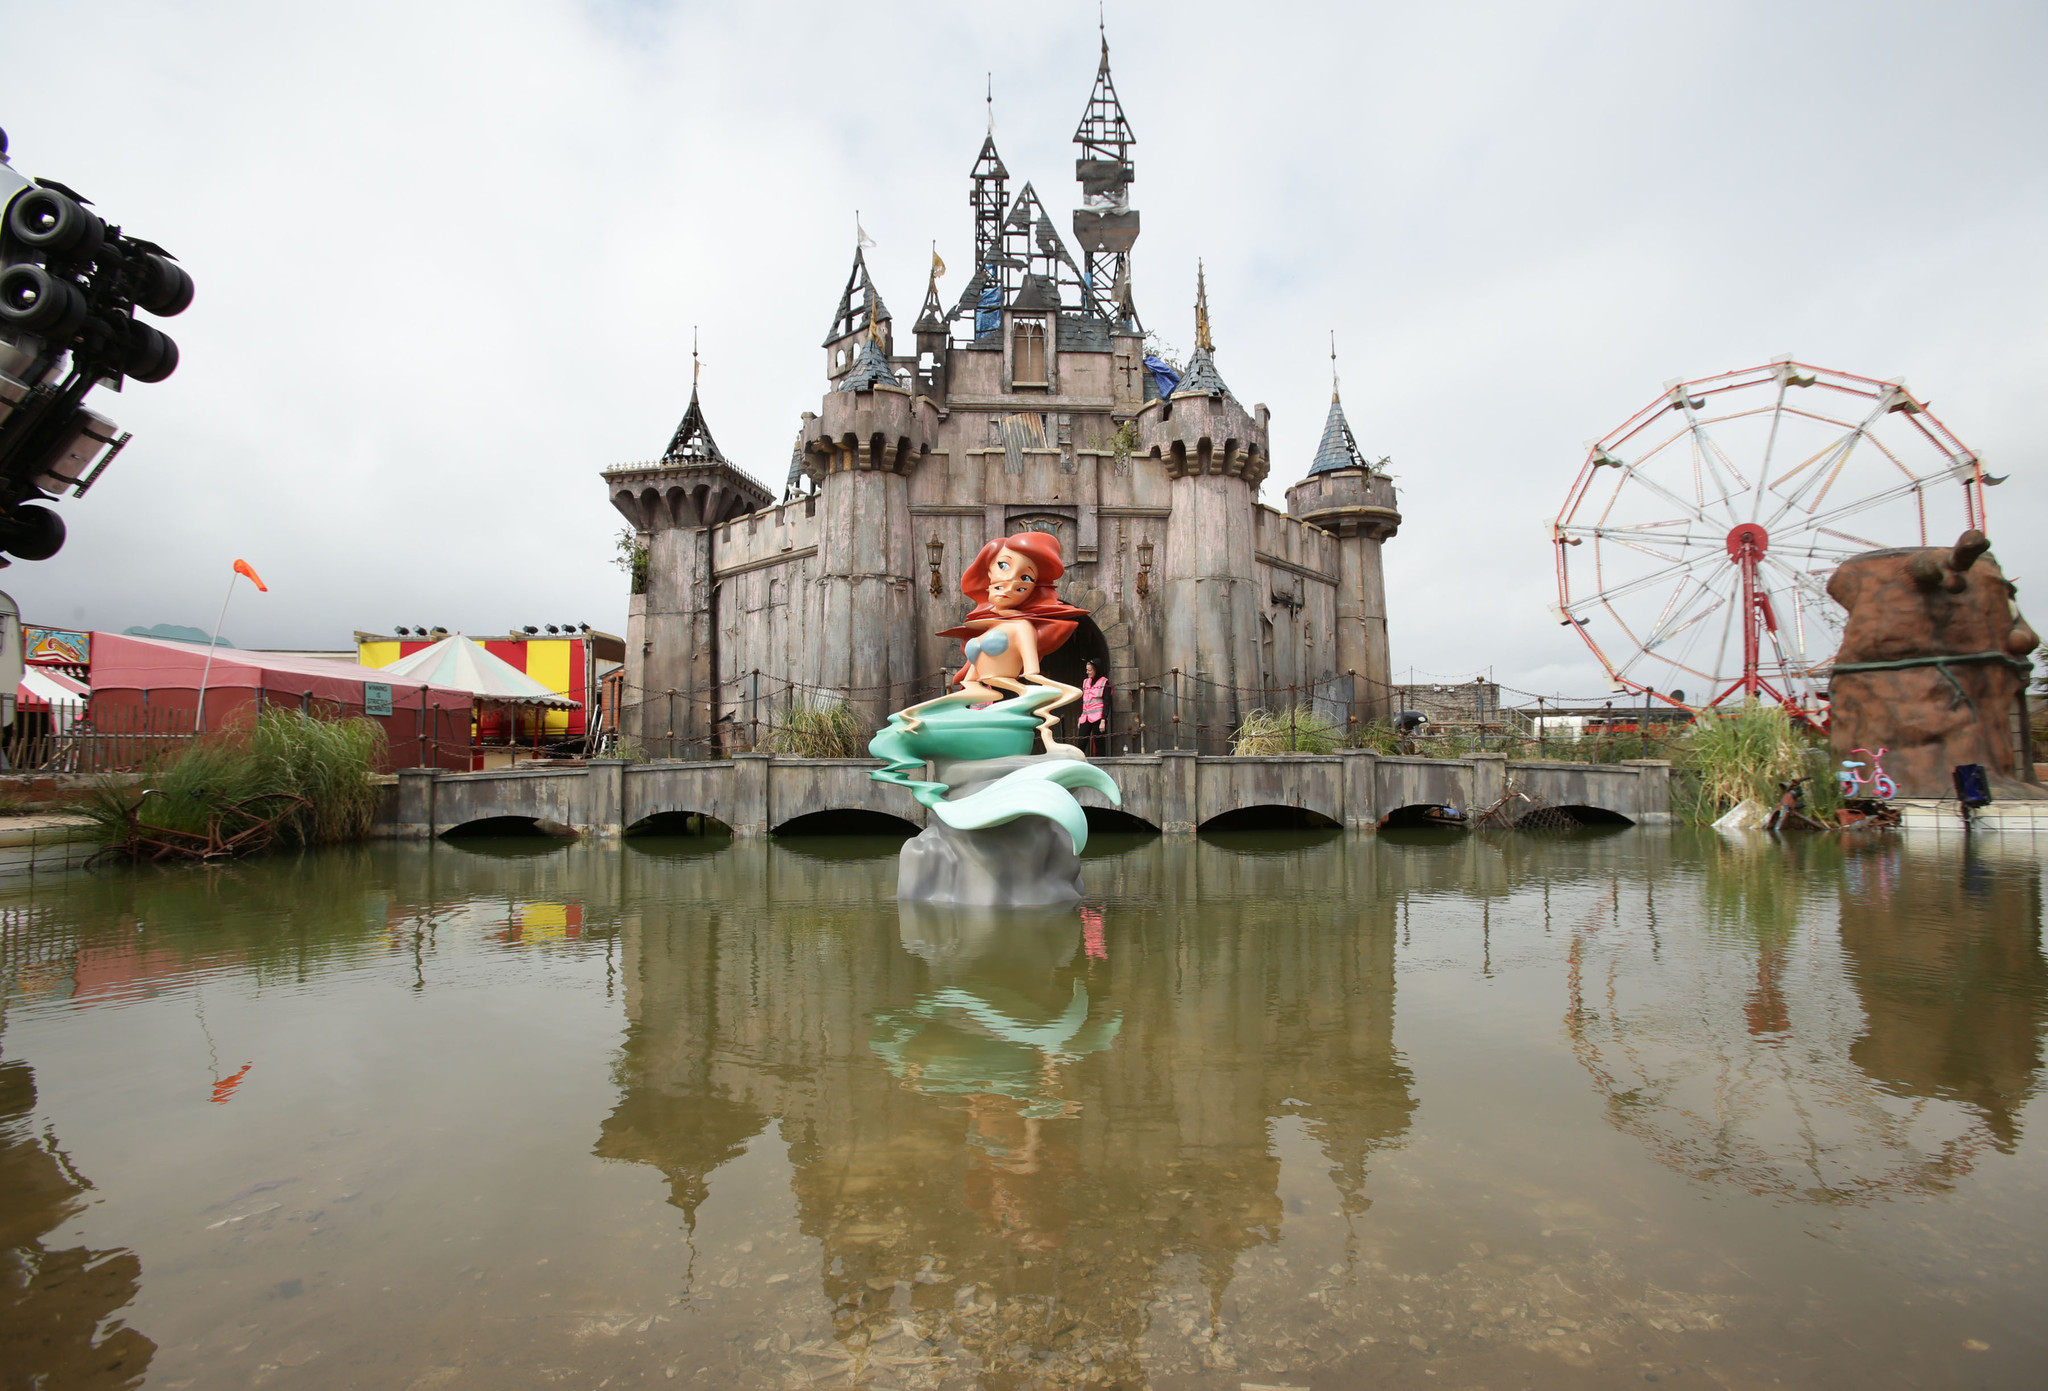 Banksy's Dismaland theme park brings $30M boost to depressed UK town